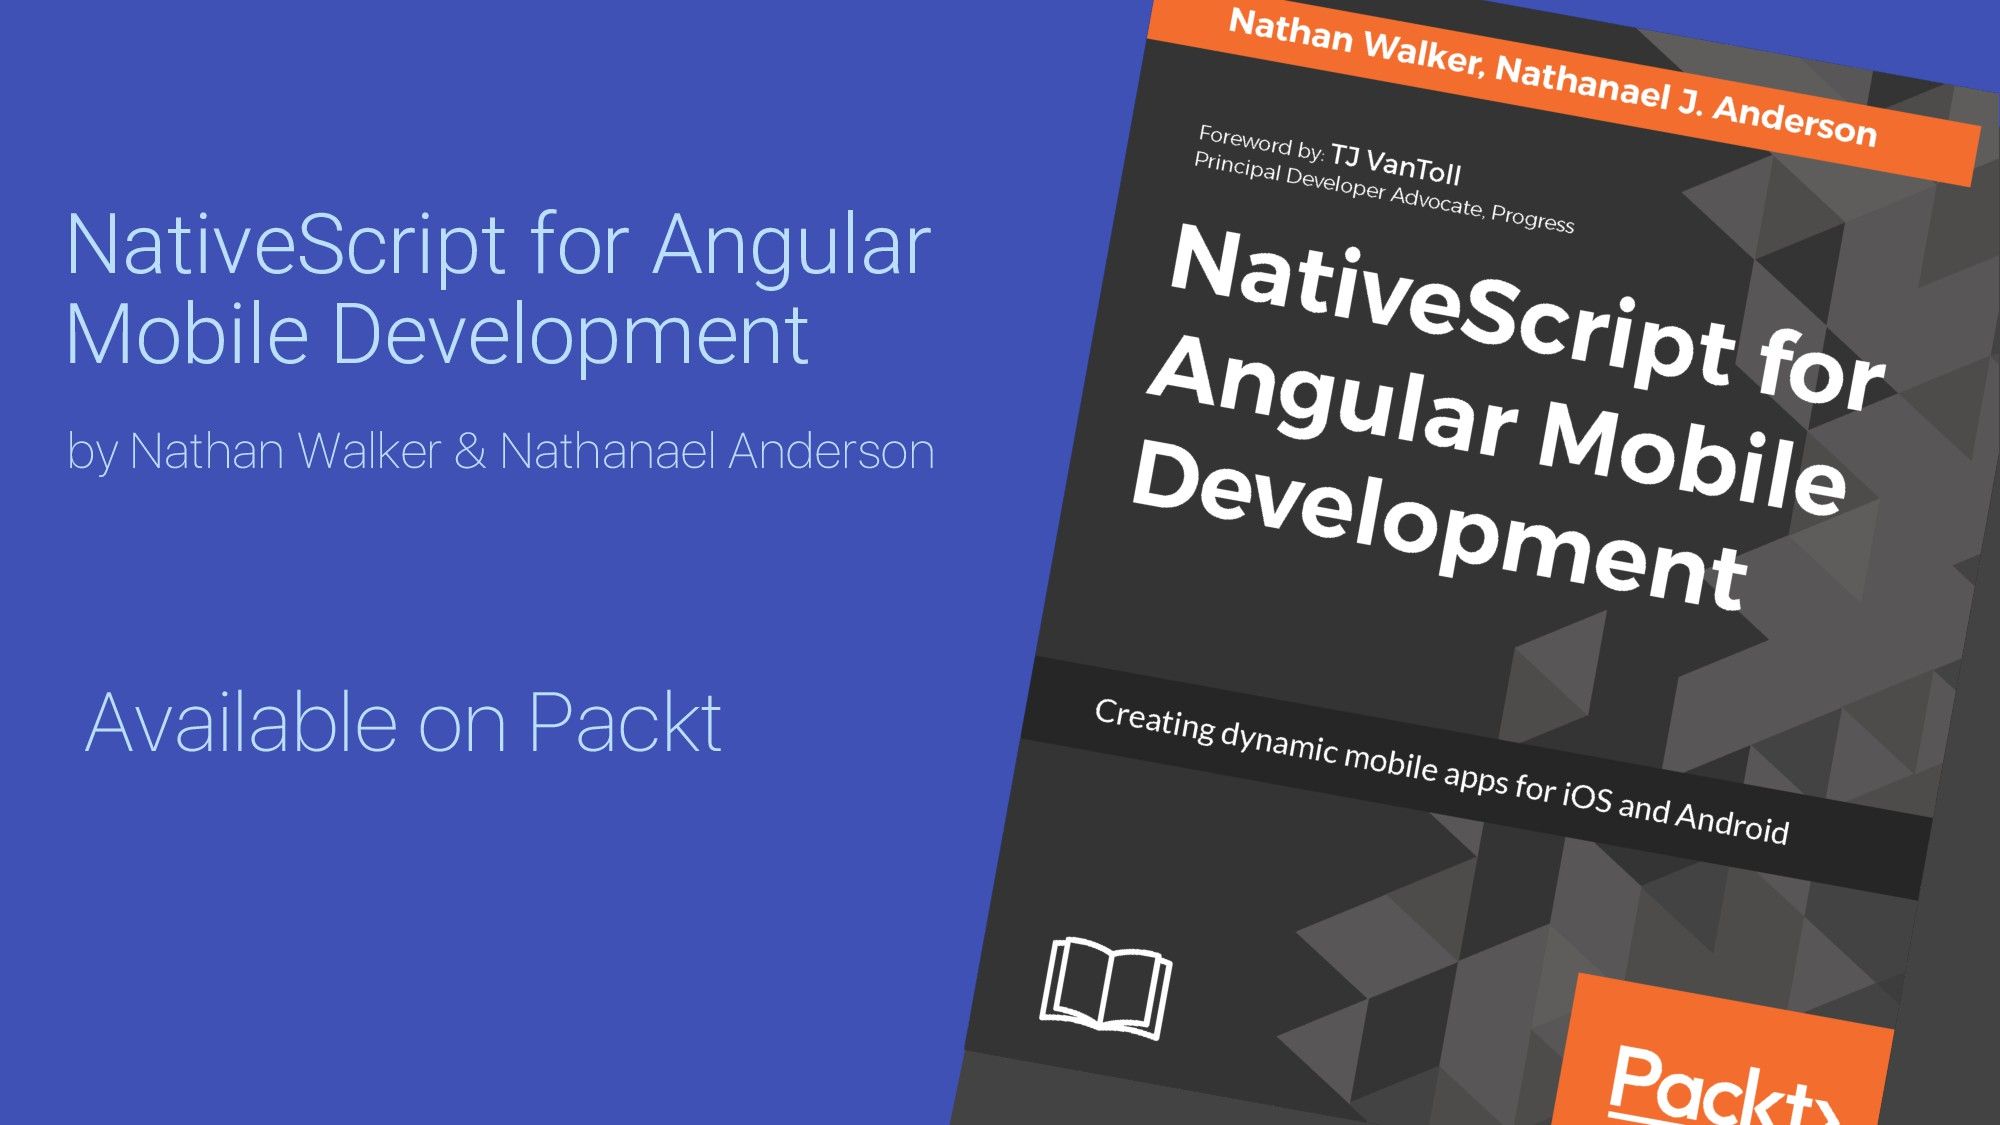 NativeScript for Angular Mobile Development Ava...